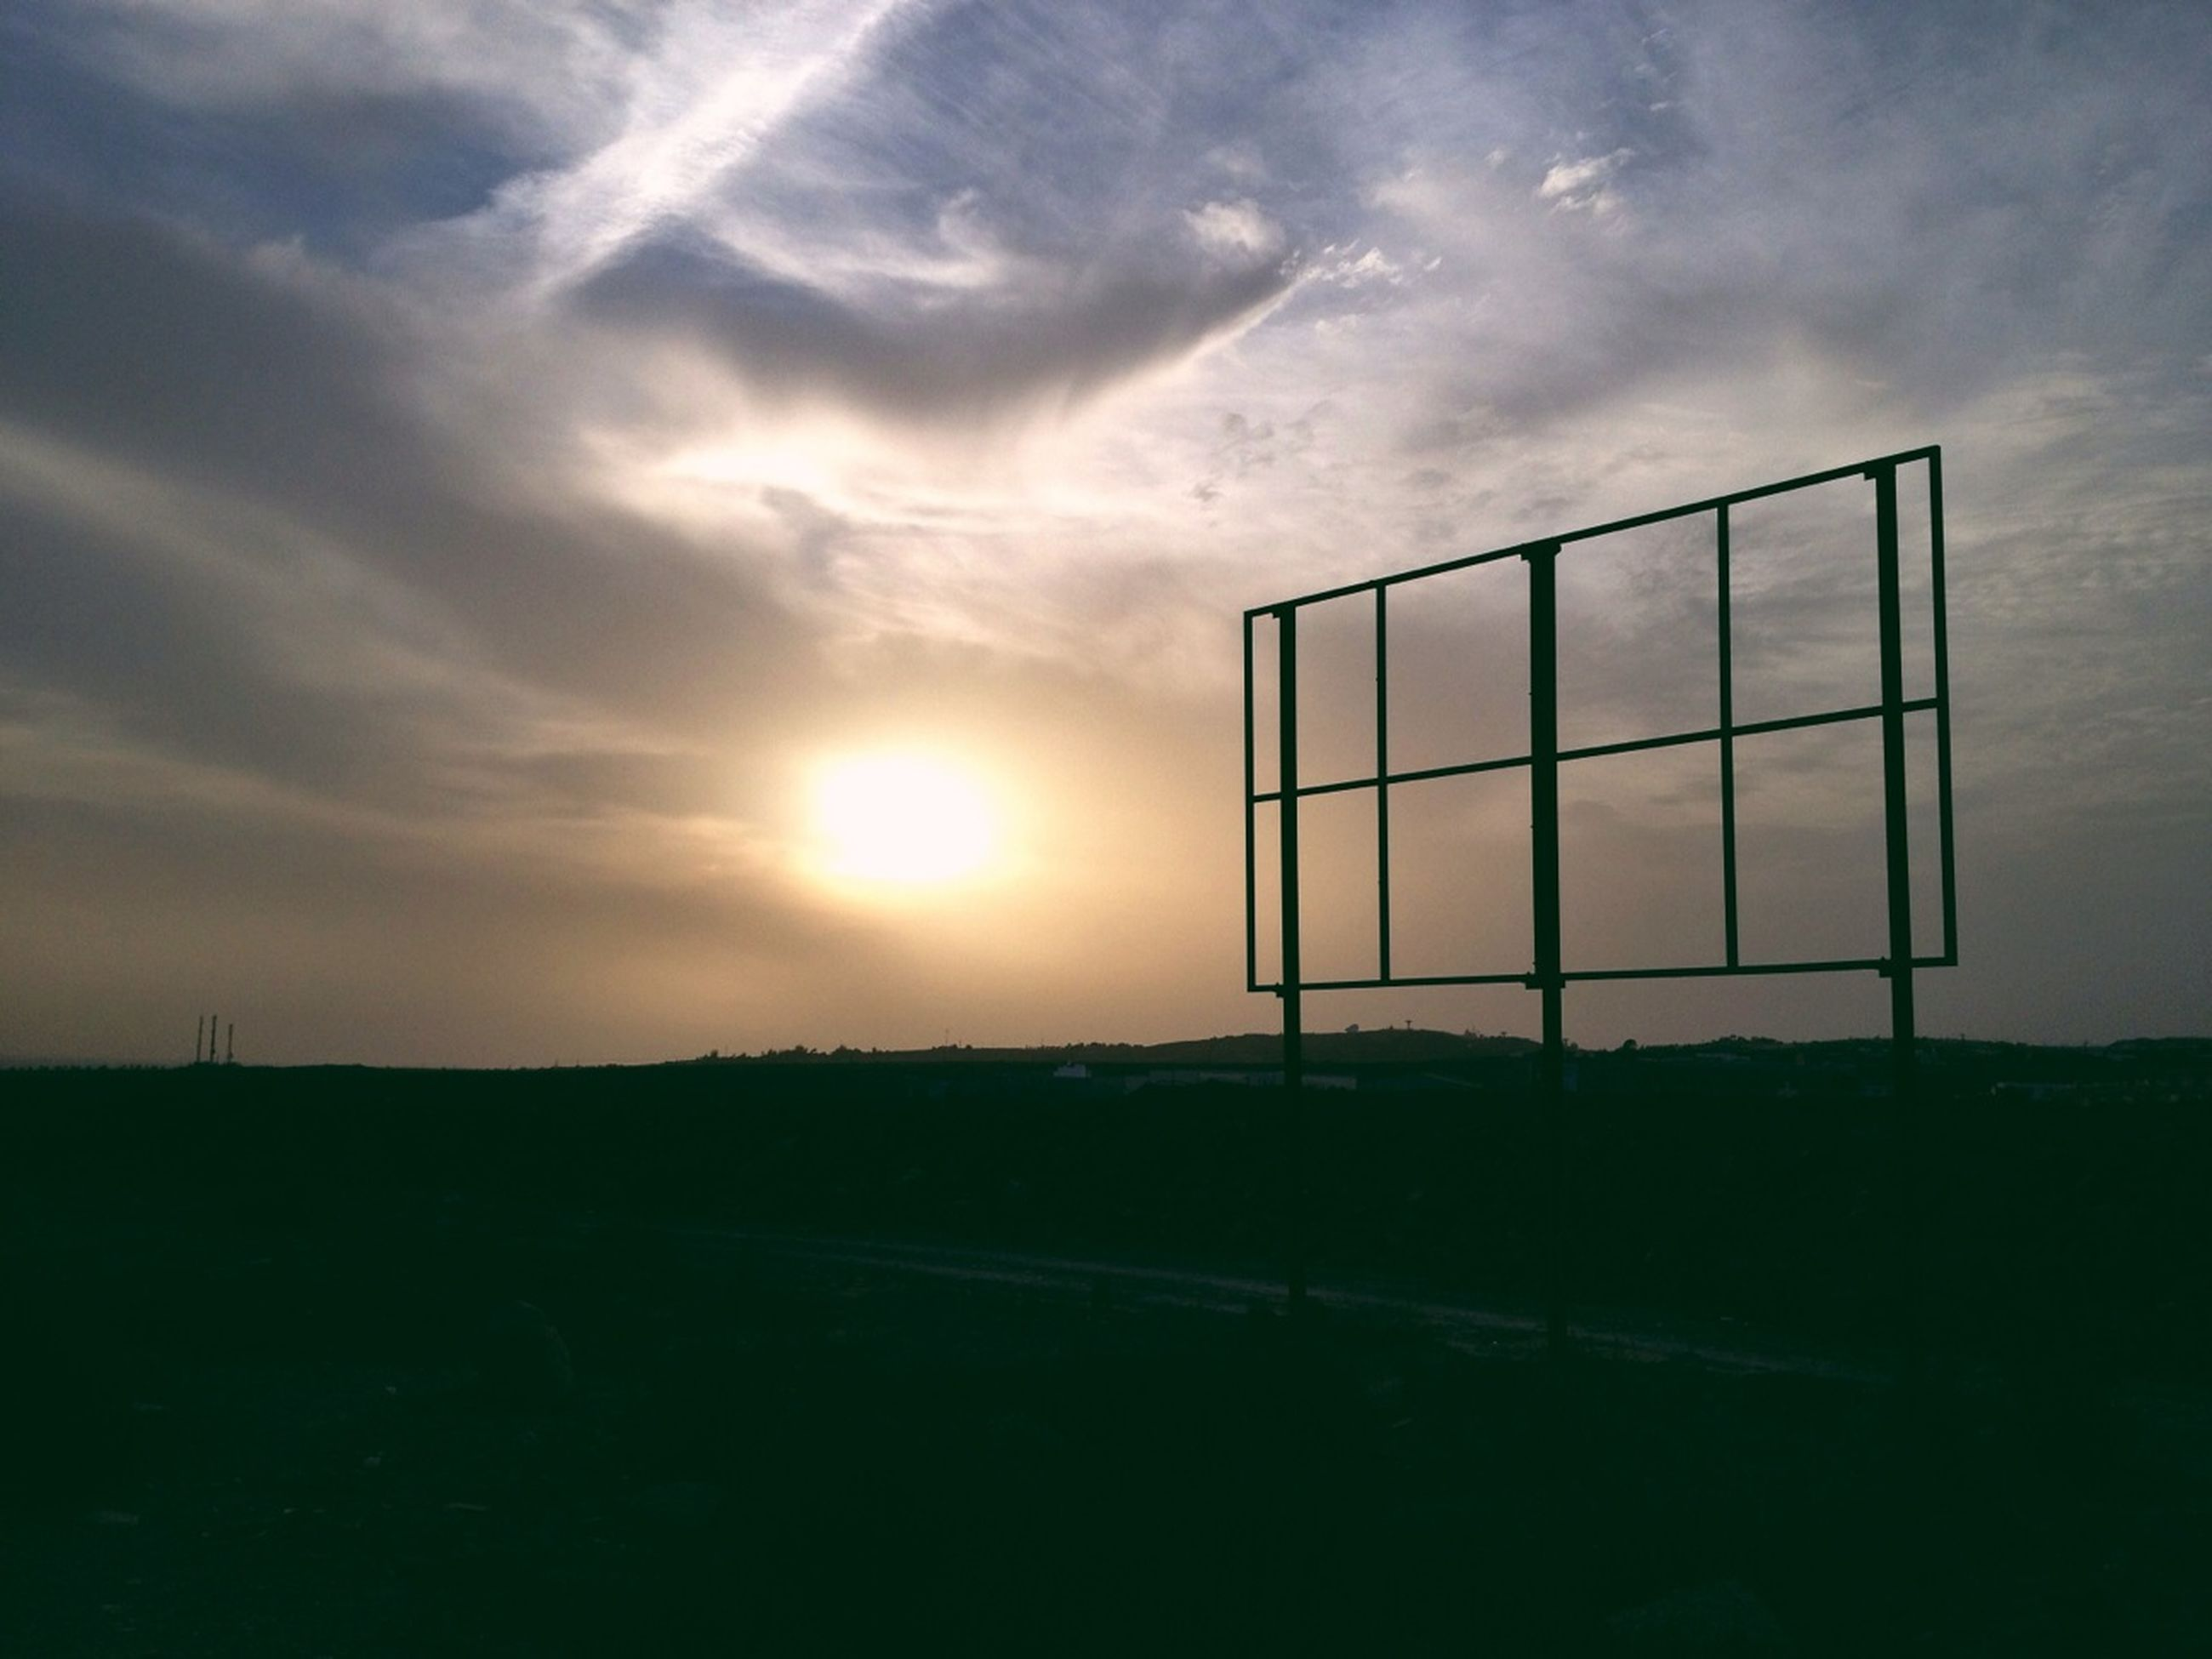 sunset, sky, sun, cloud - sky, sunlight, landscape, cloud, silhouette, field, sunbeam, nature, scenics, tranquil scene, tranquility, lens flare, beauty in nature, cloudy, fence, built structure, outdoors